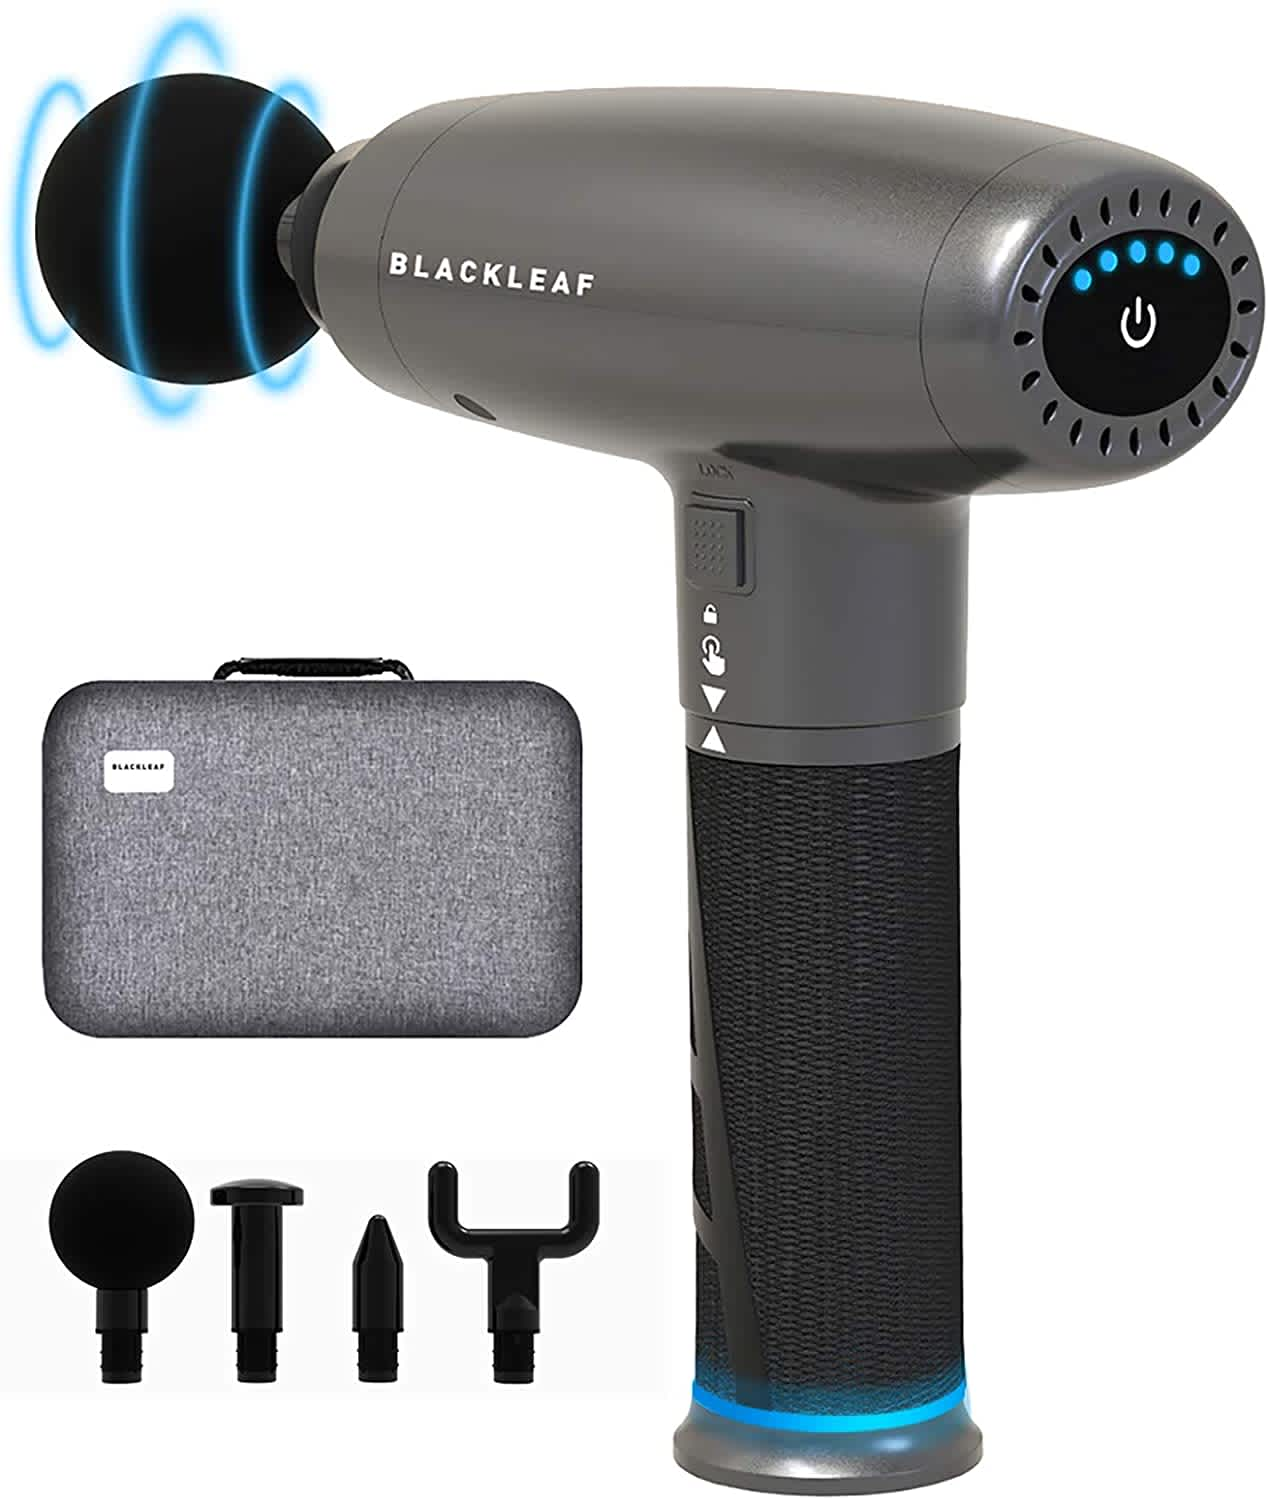 Blackleaf Portable Massage Gun